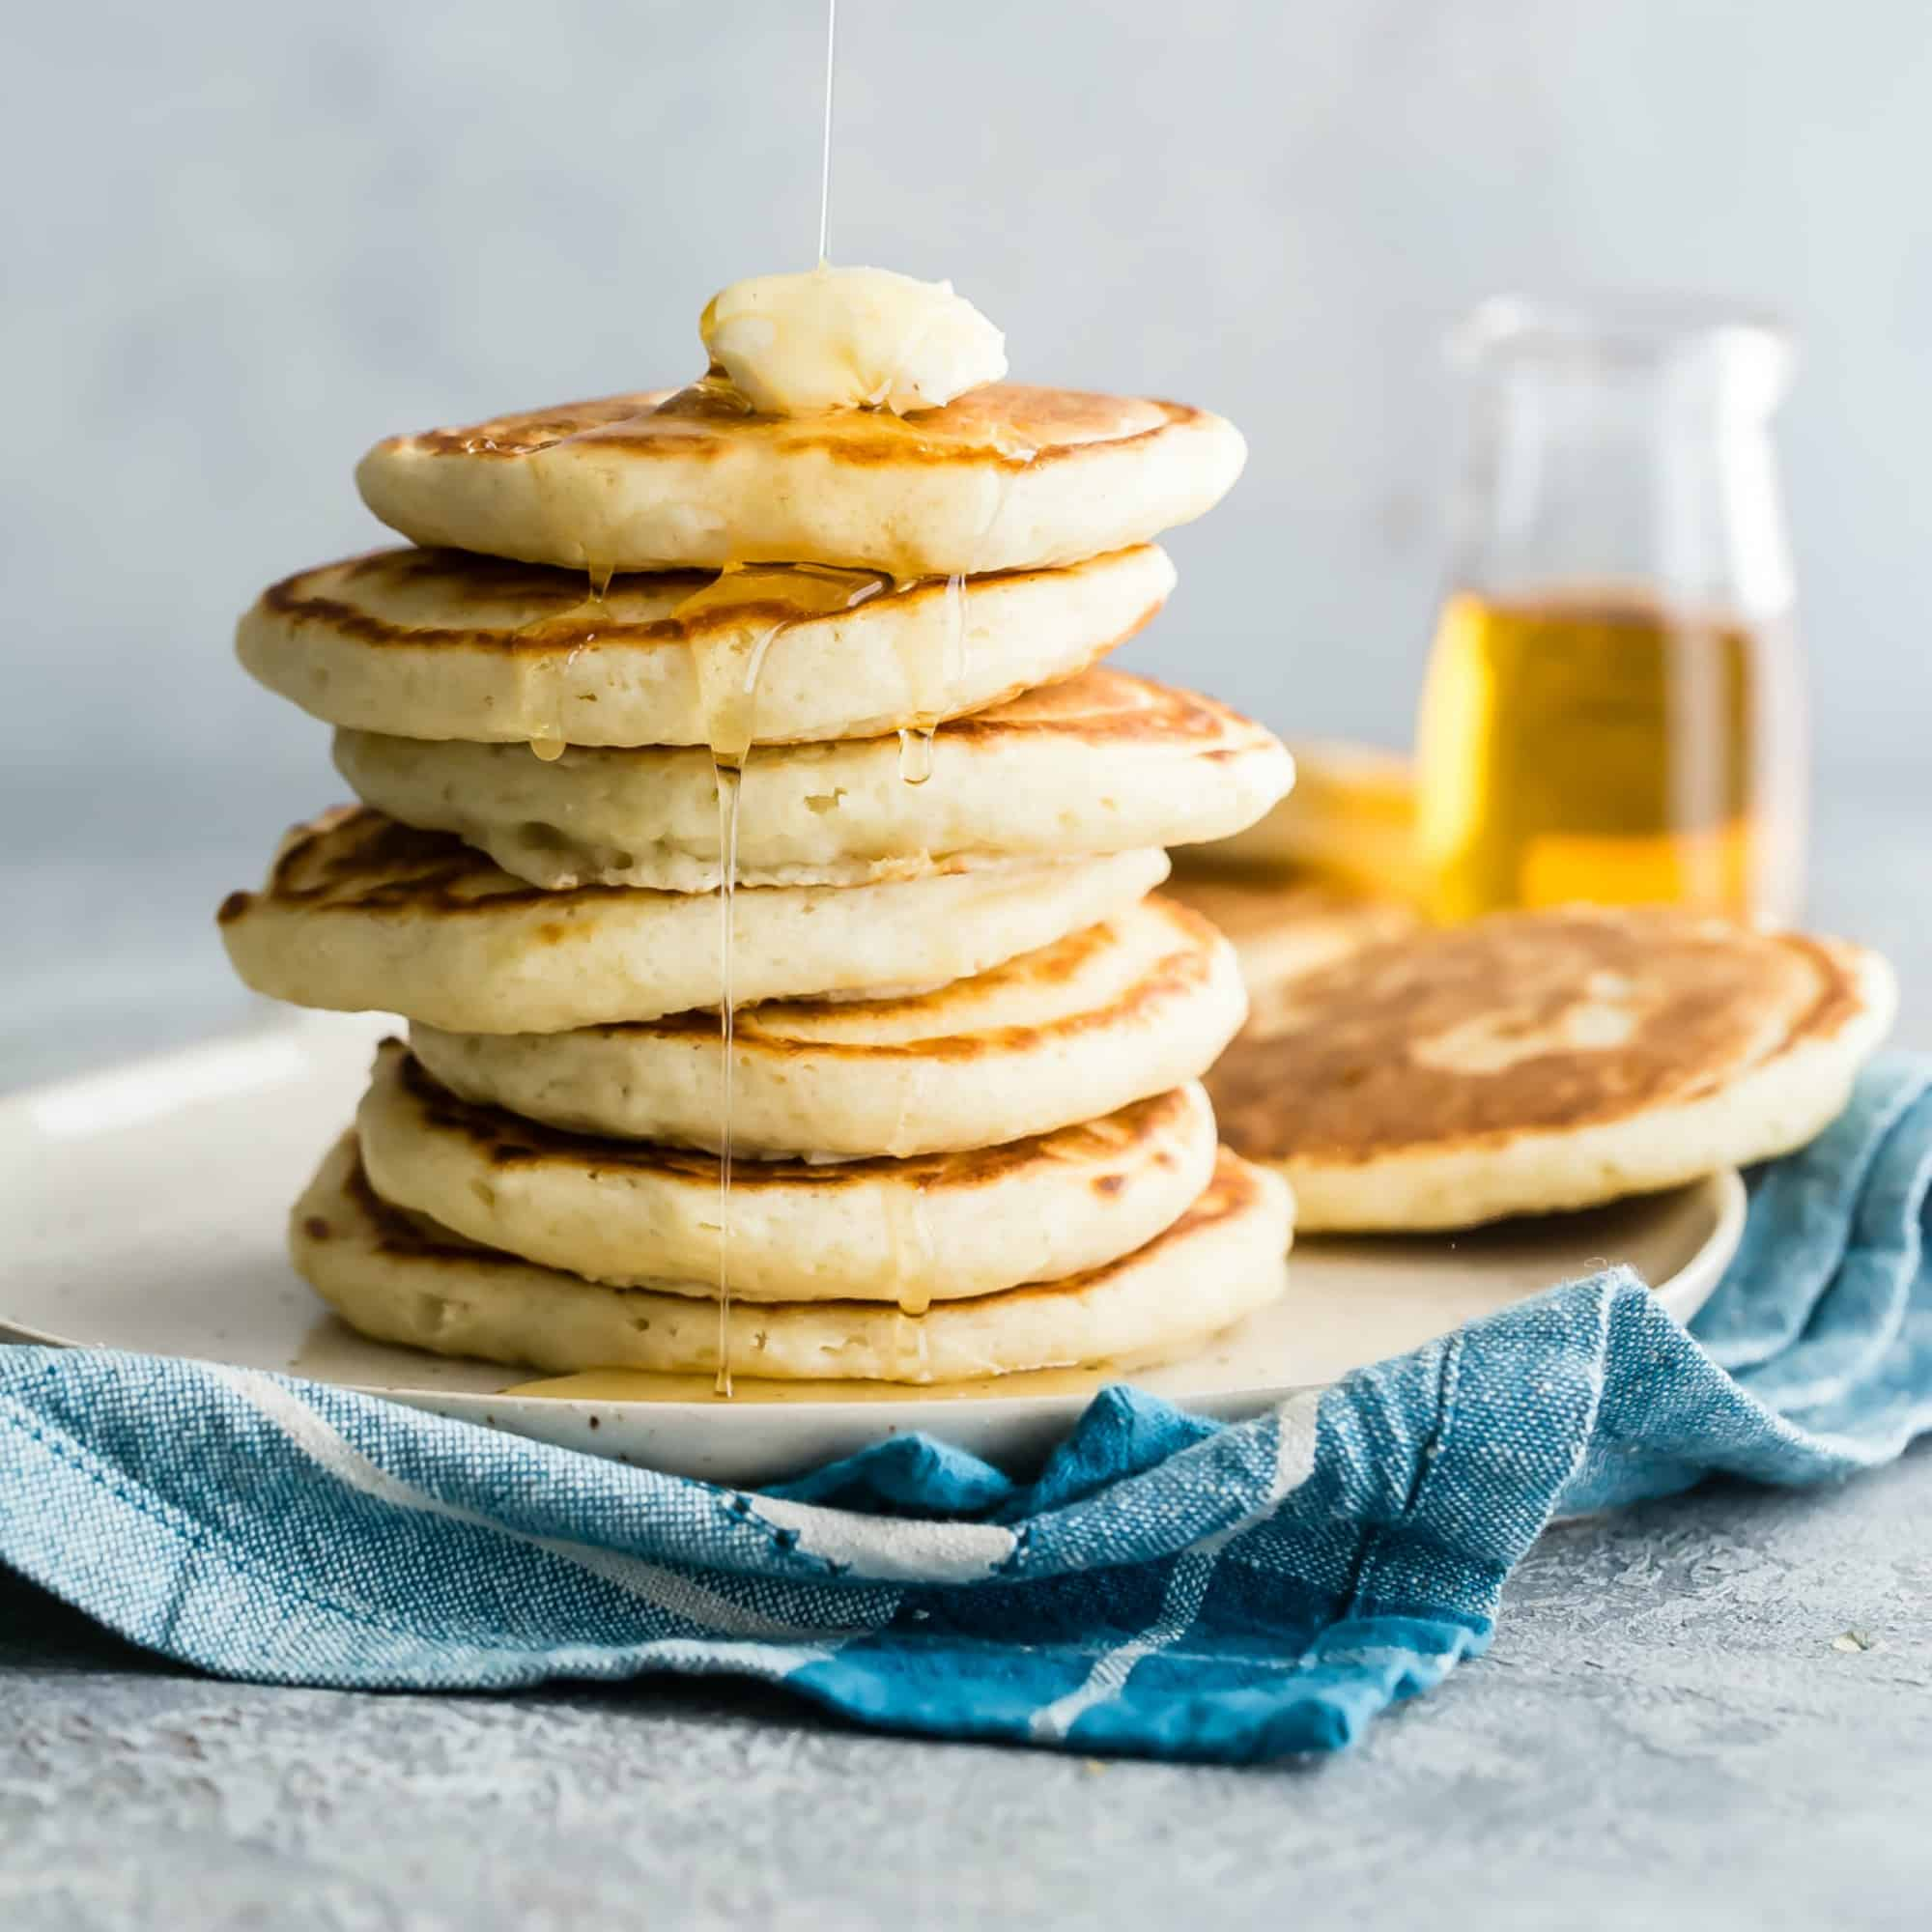 Once you learn how to make pancakes from scratch, you'll never buy a box mix again! Using ingredients you already have in your kitchen, whip up the fluffiest, tastiest pancakes around, with or without syrup. I have all your variation questions covered, too! Even the one where you want to make pancakes on your next camping trip.